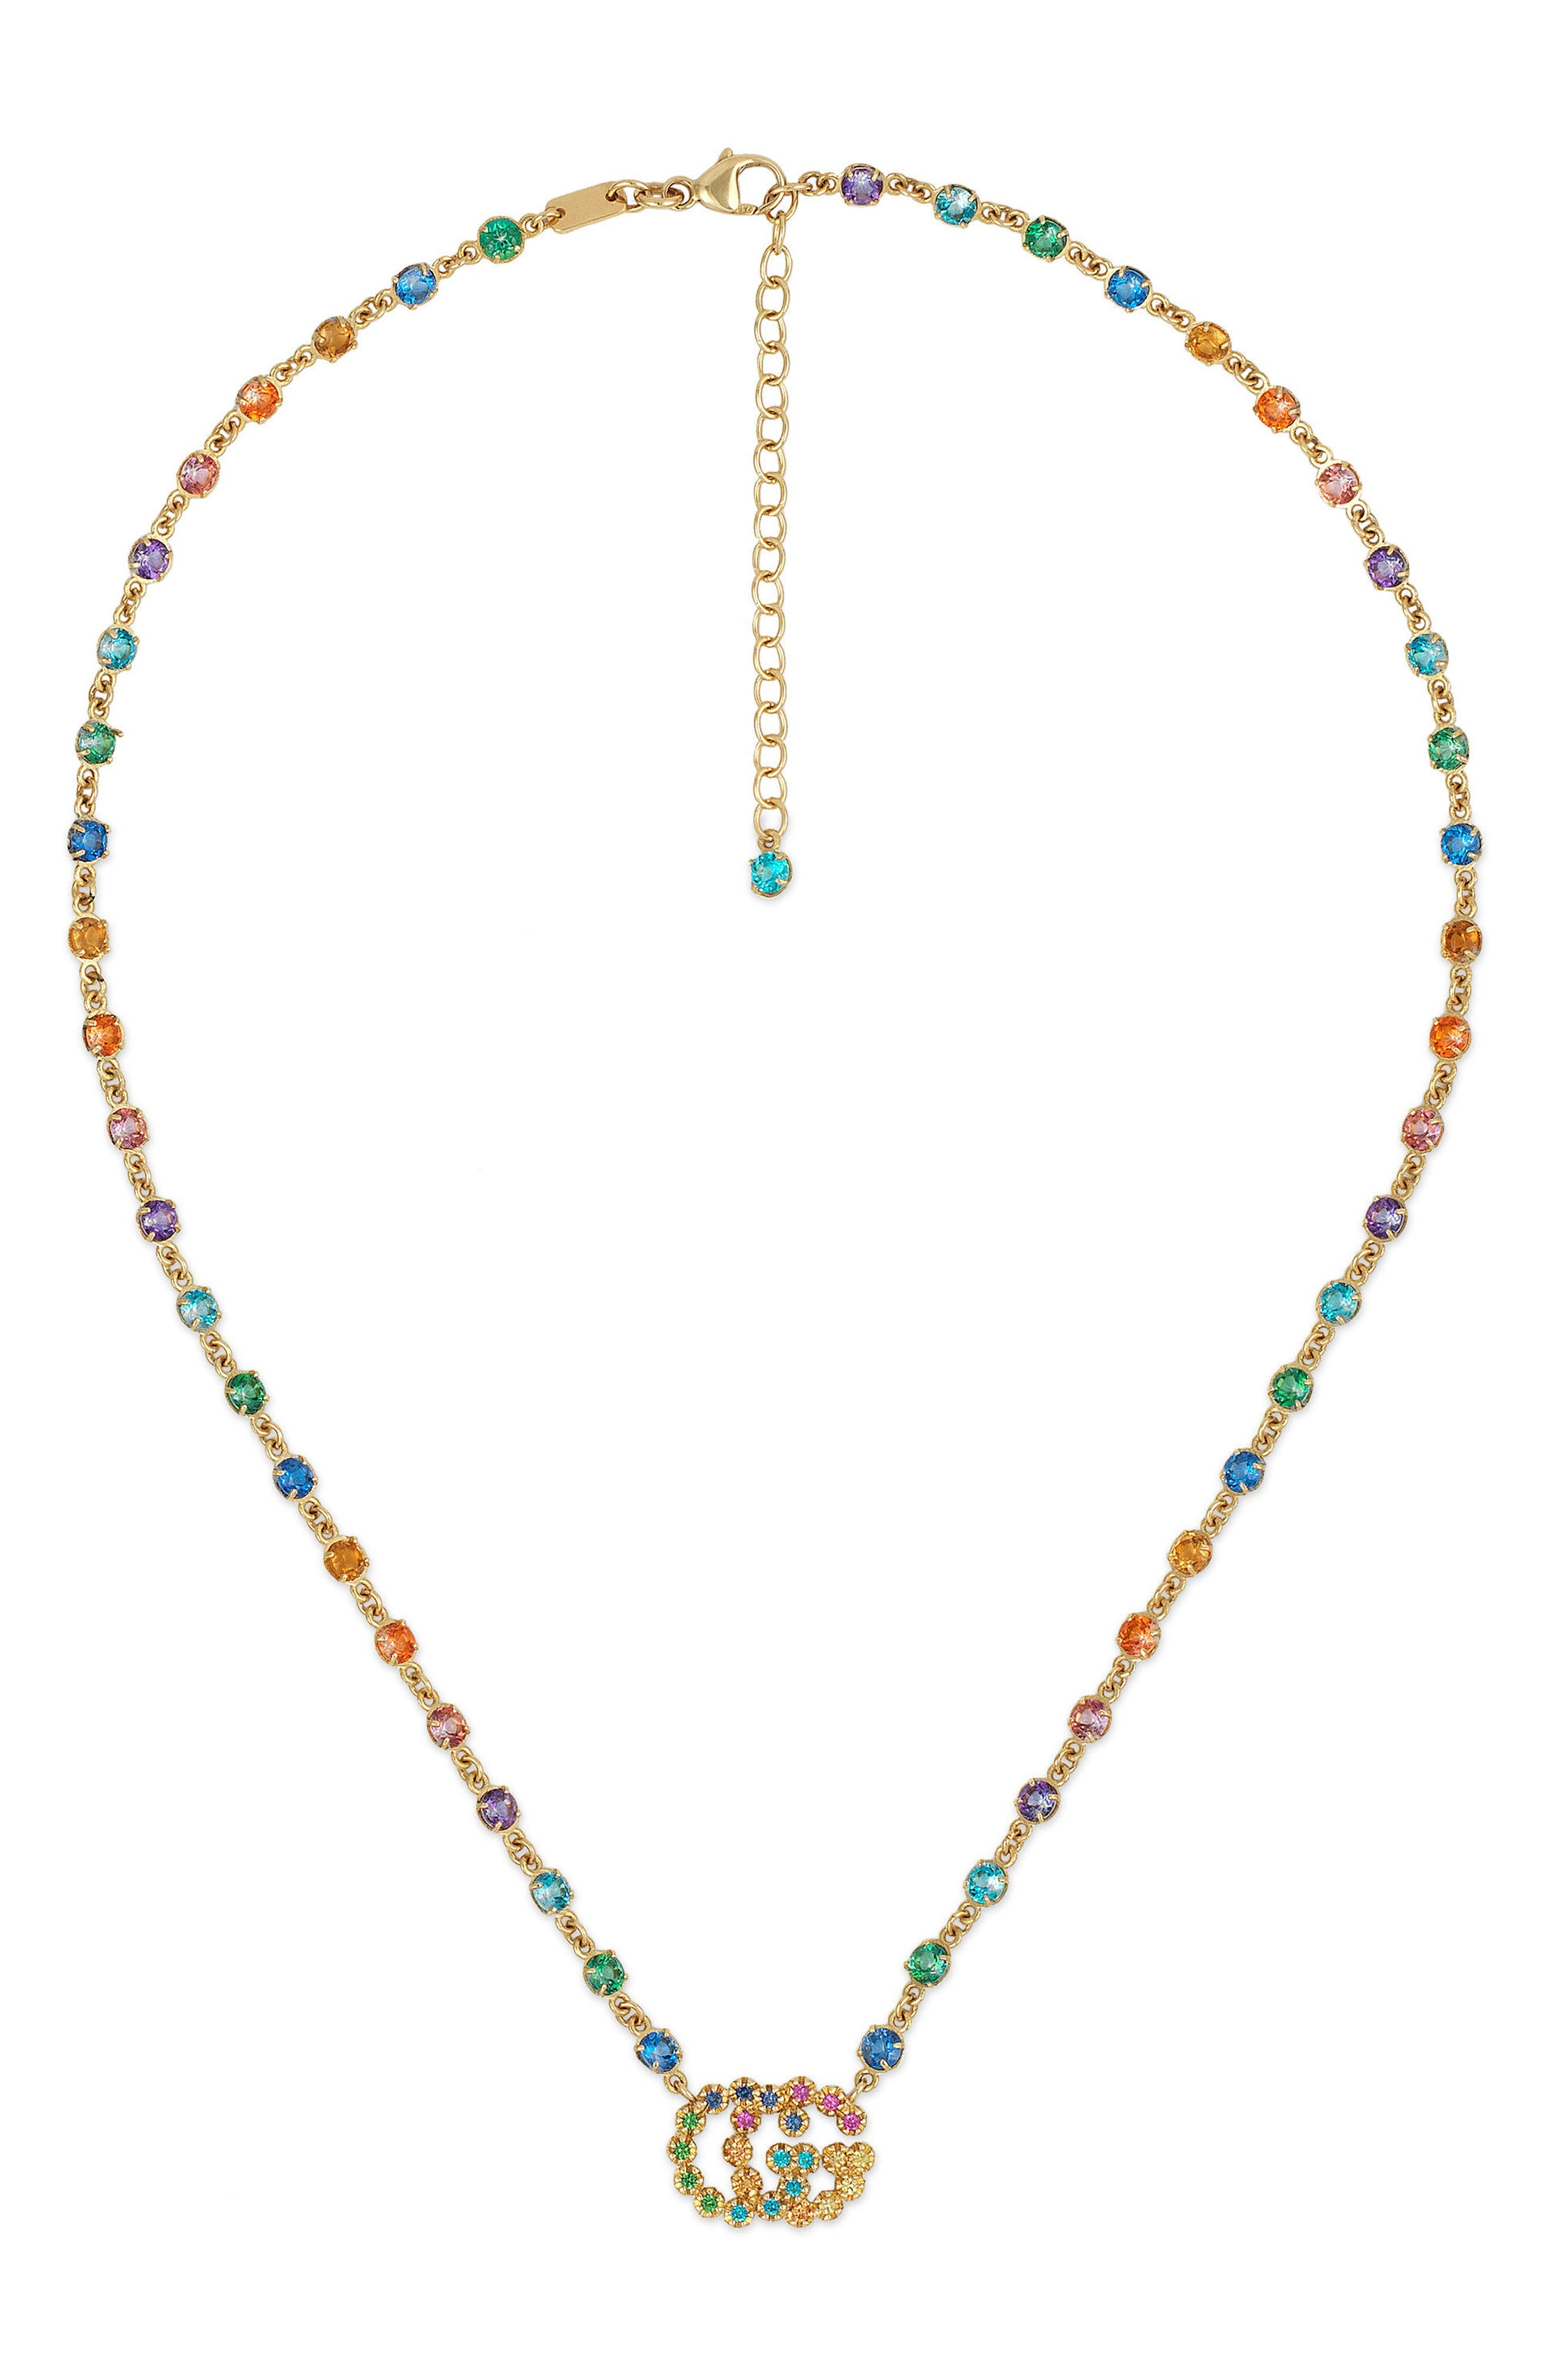 Double-G Multistone Pendant Necklace,                         Main,                         color, YELLOW GOLD